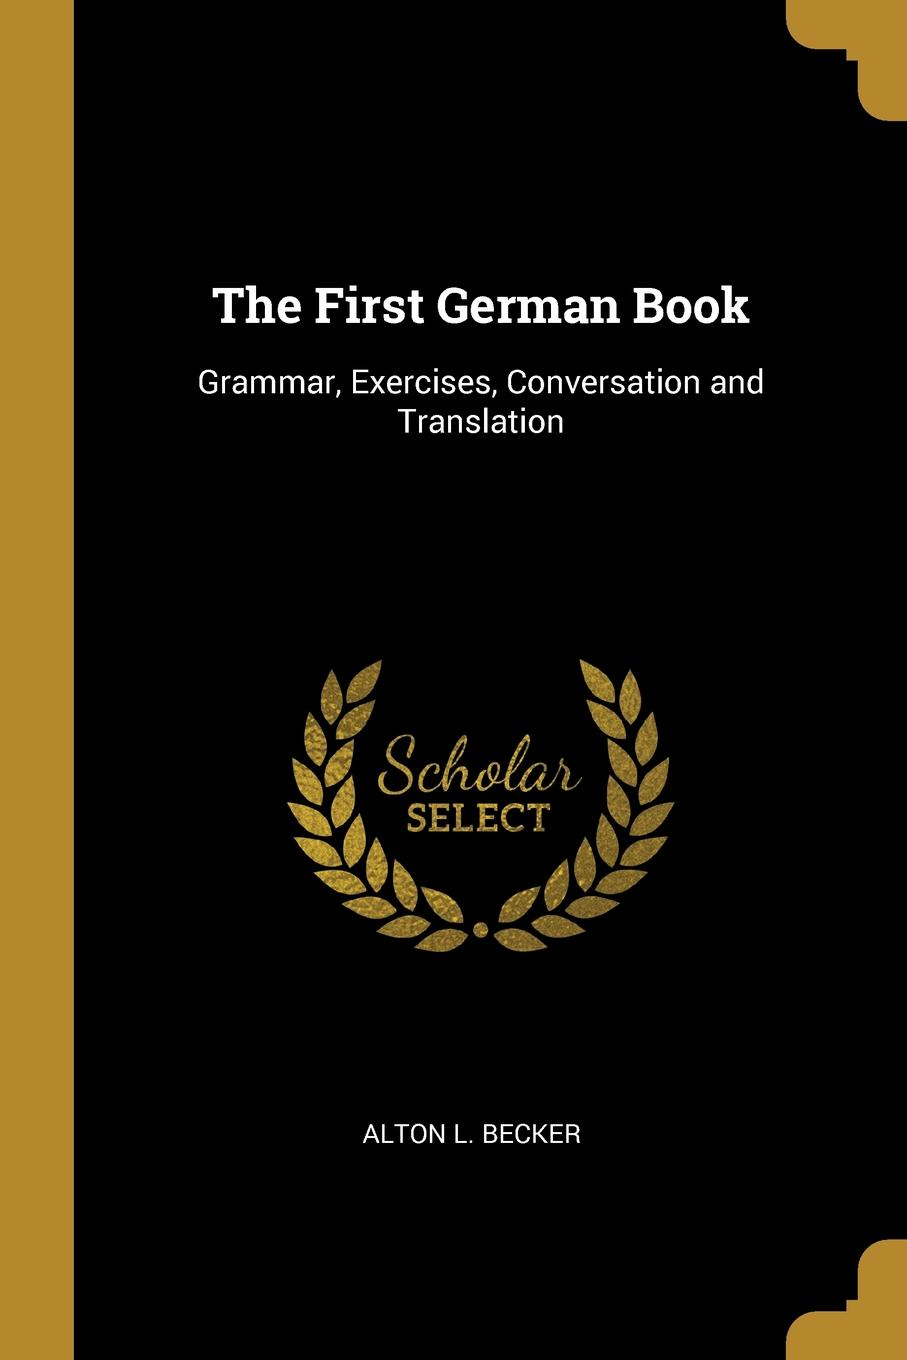 The First German Book. Grammar, Exercises, Conversation and Translation